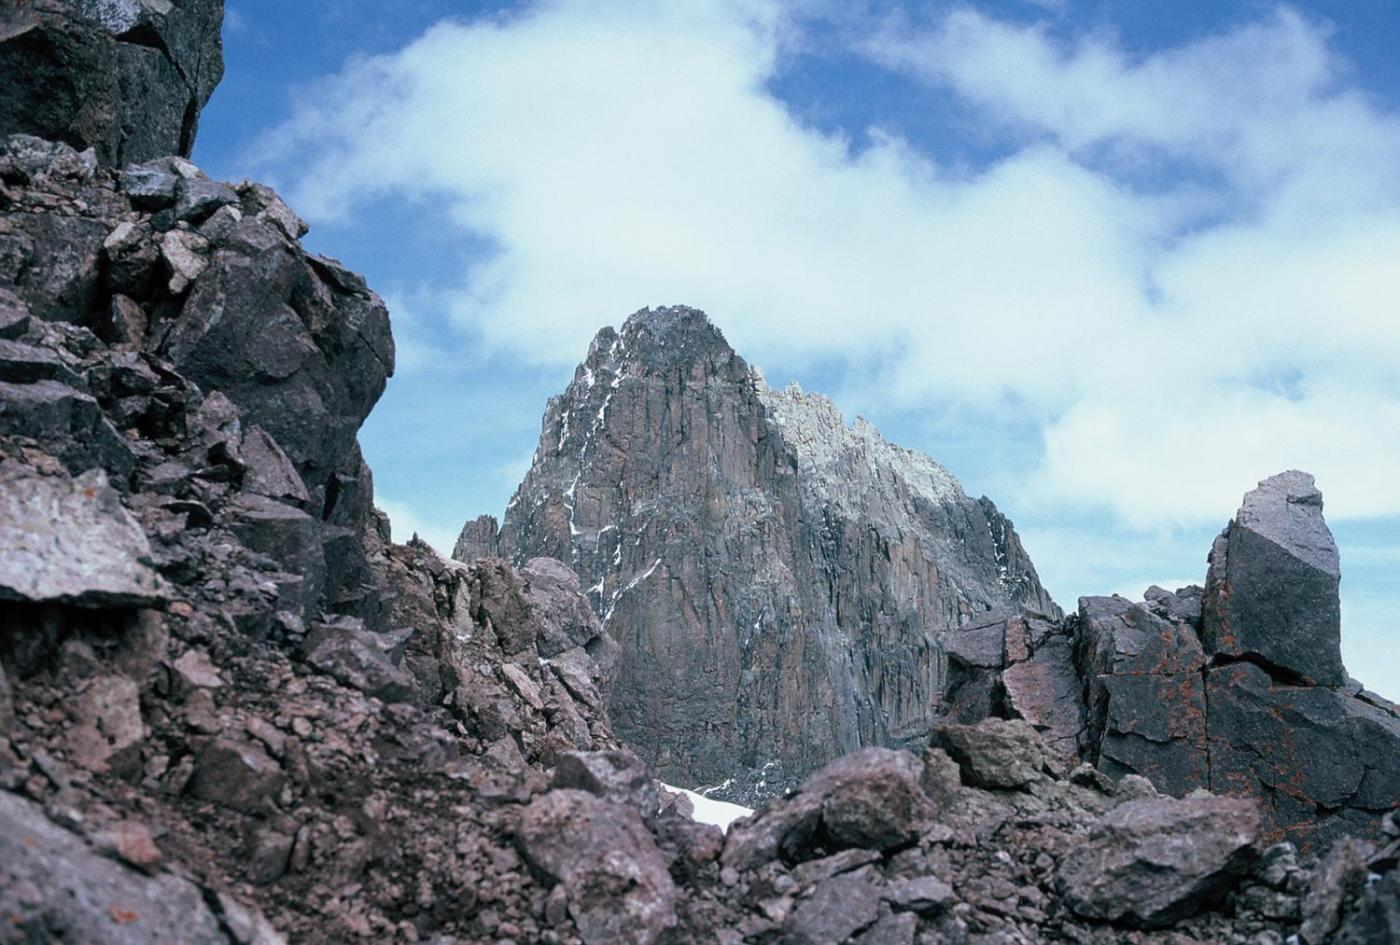 Majestic Mt. Kenya